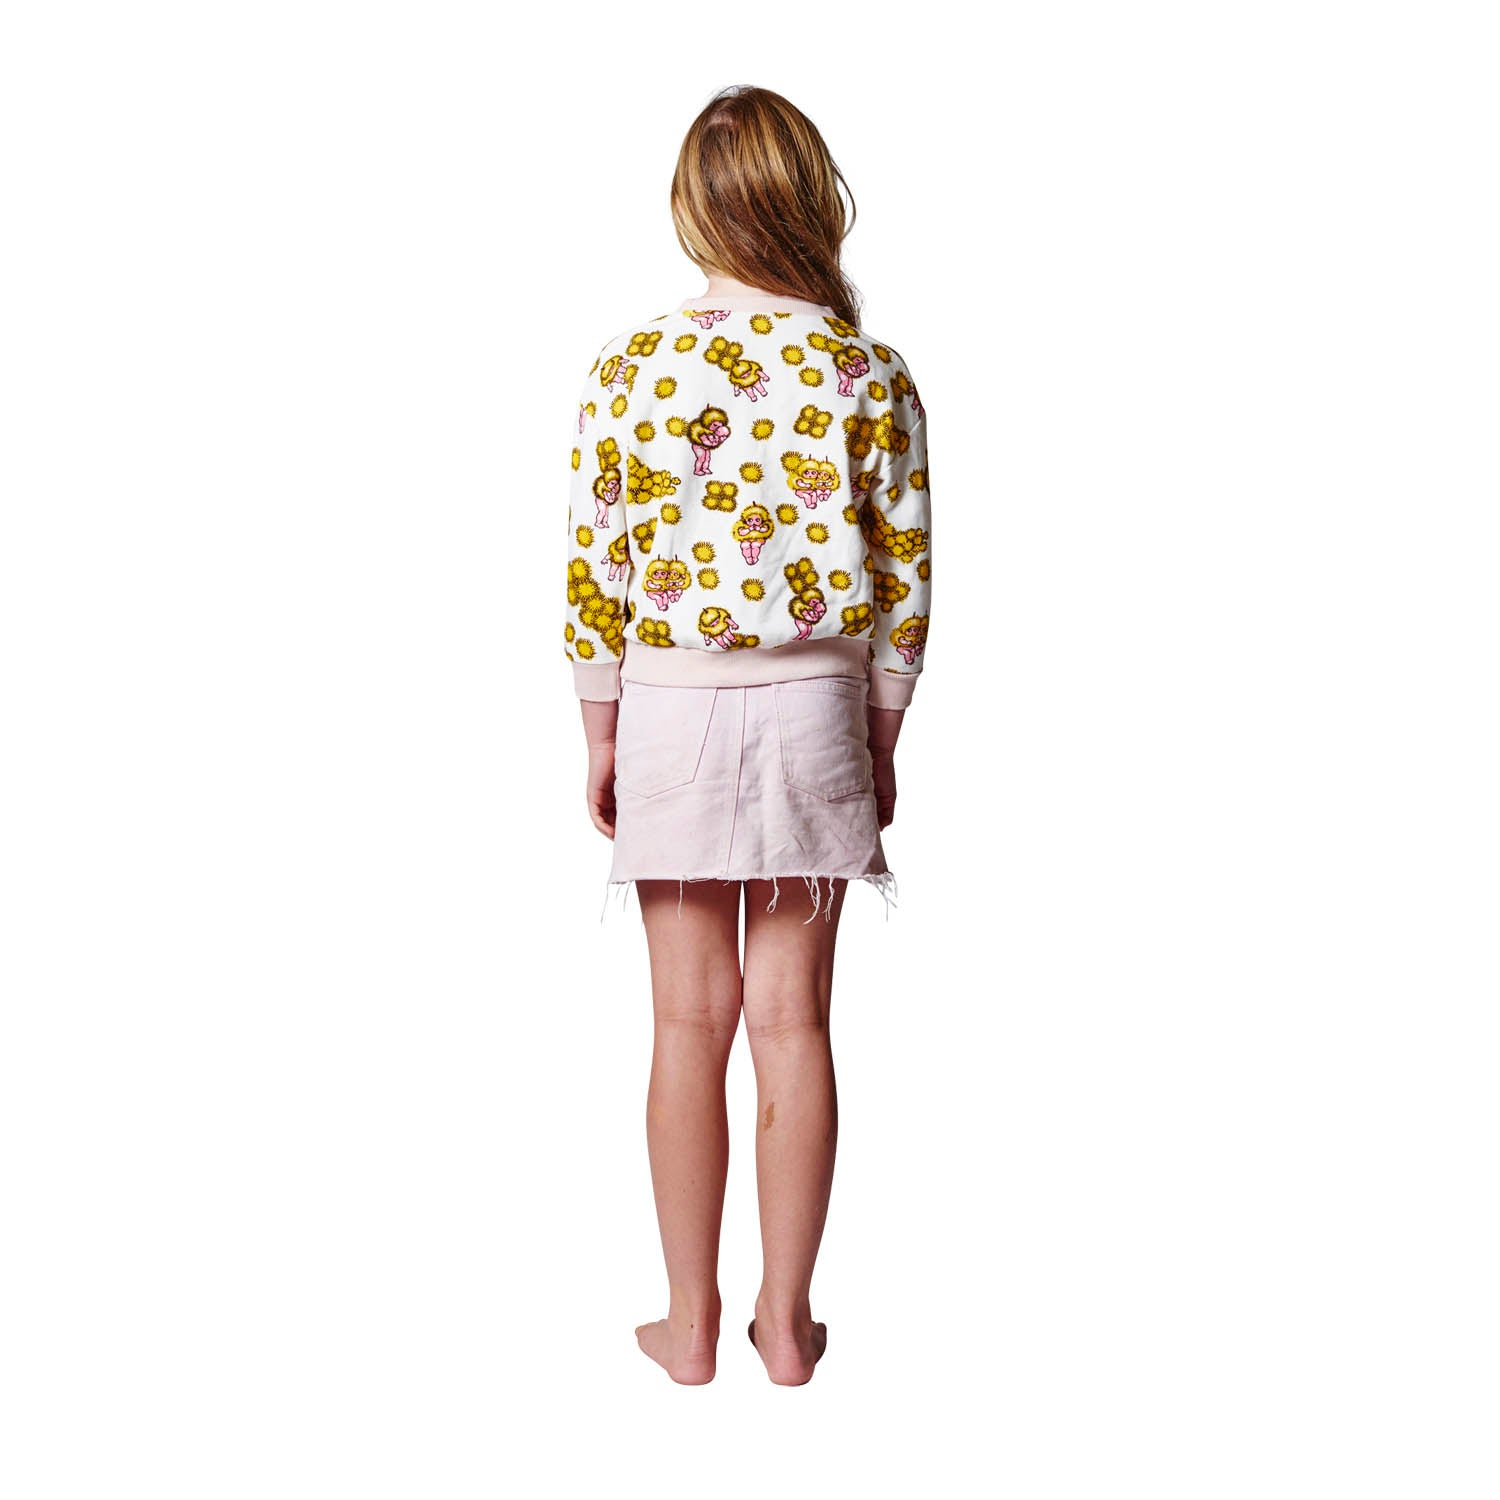 KIP&CO X MAY GIBBS WATTLE BABIES SWEATER